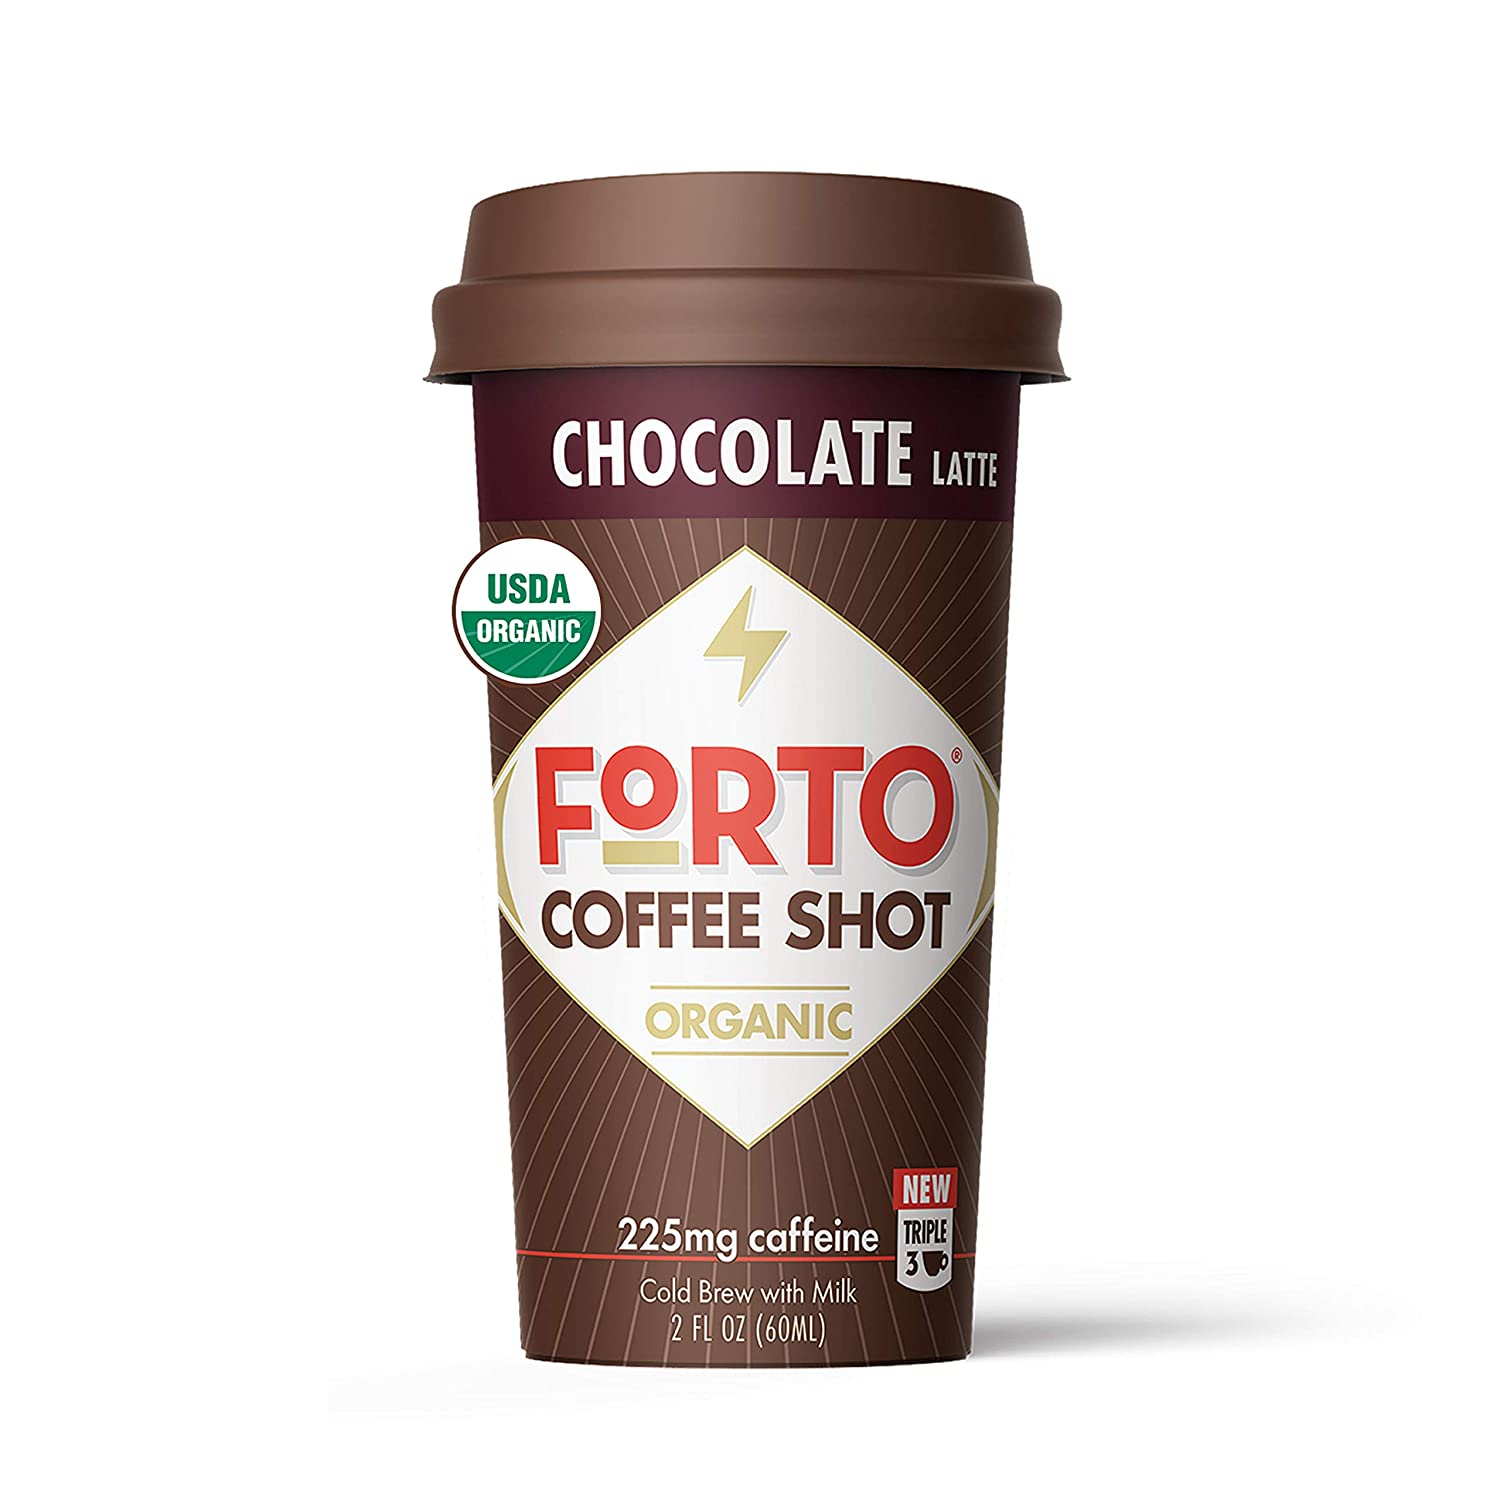 FORTO Coffee Shots - Chocolate Latte, Ready-to-Drink on the go, High Energy Cold Brew Coffee - Fast Coffee Energy Boost, 2 Fl Oz, Pack of 6: Grocery & Gourmet Food